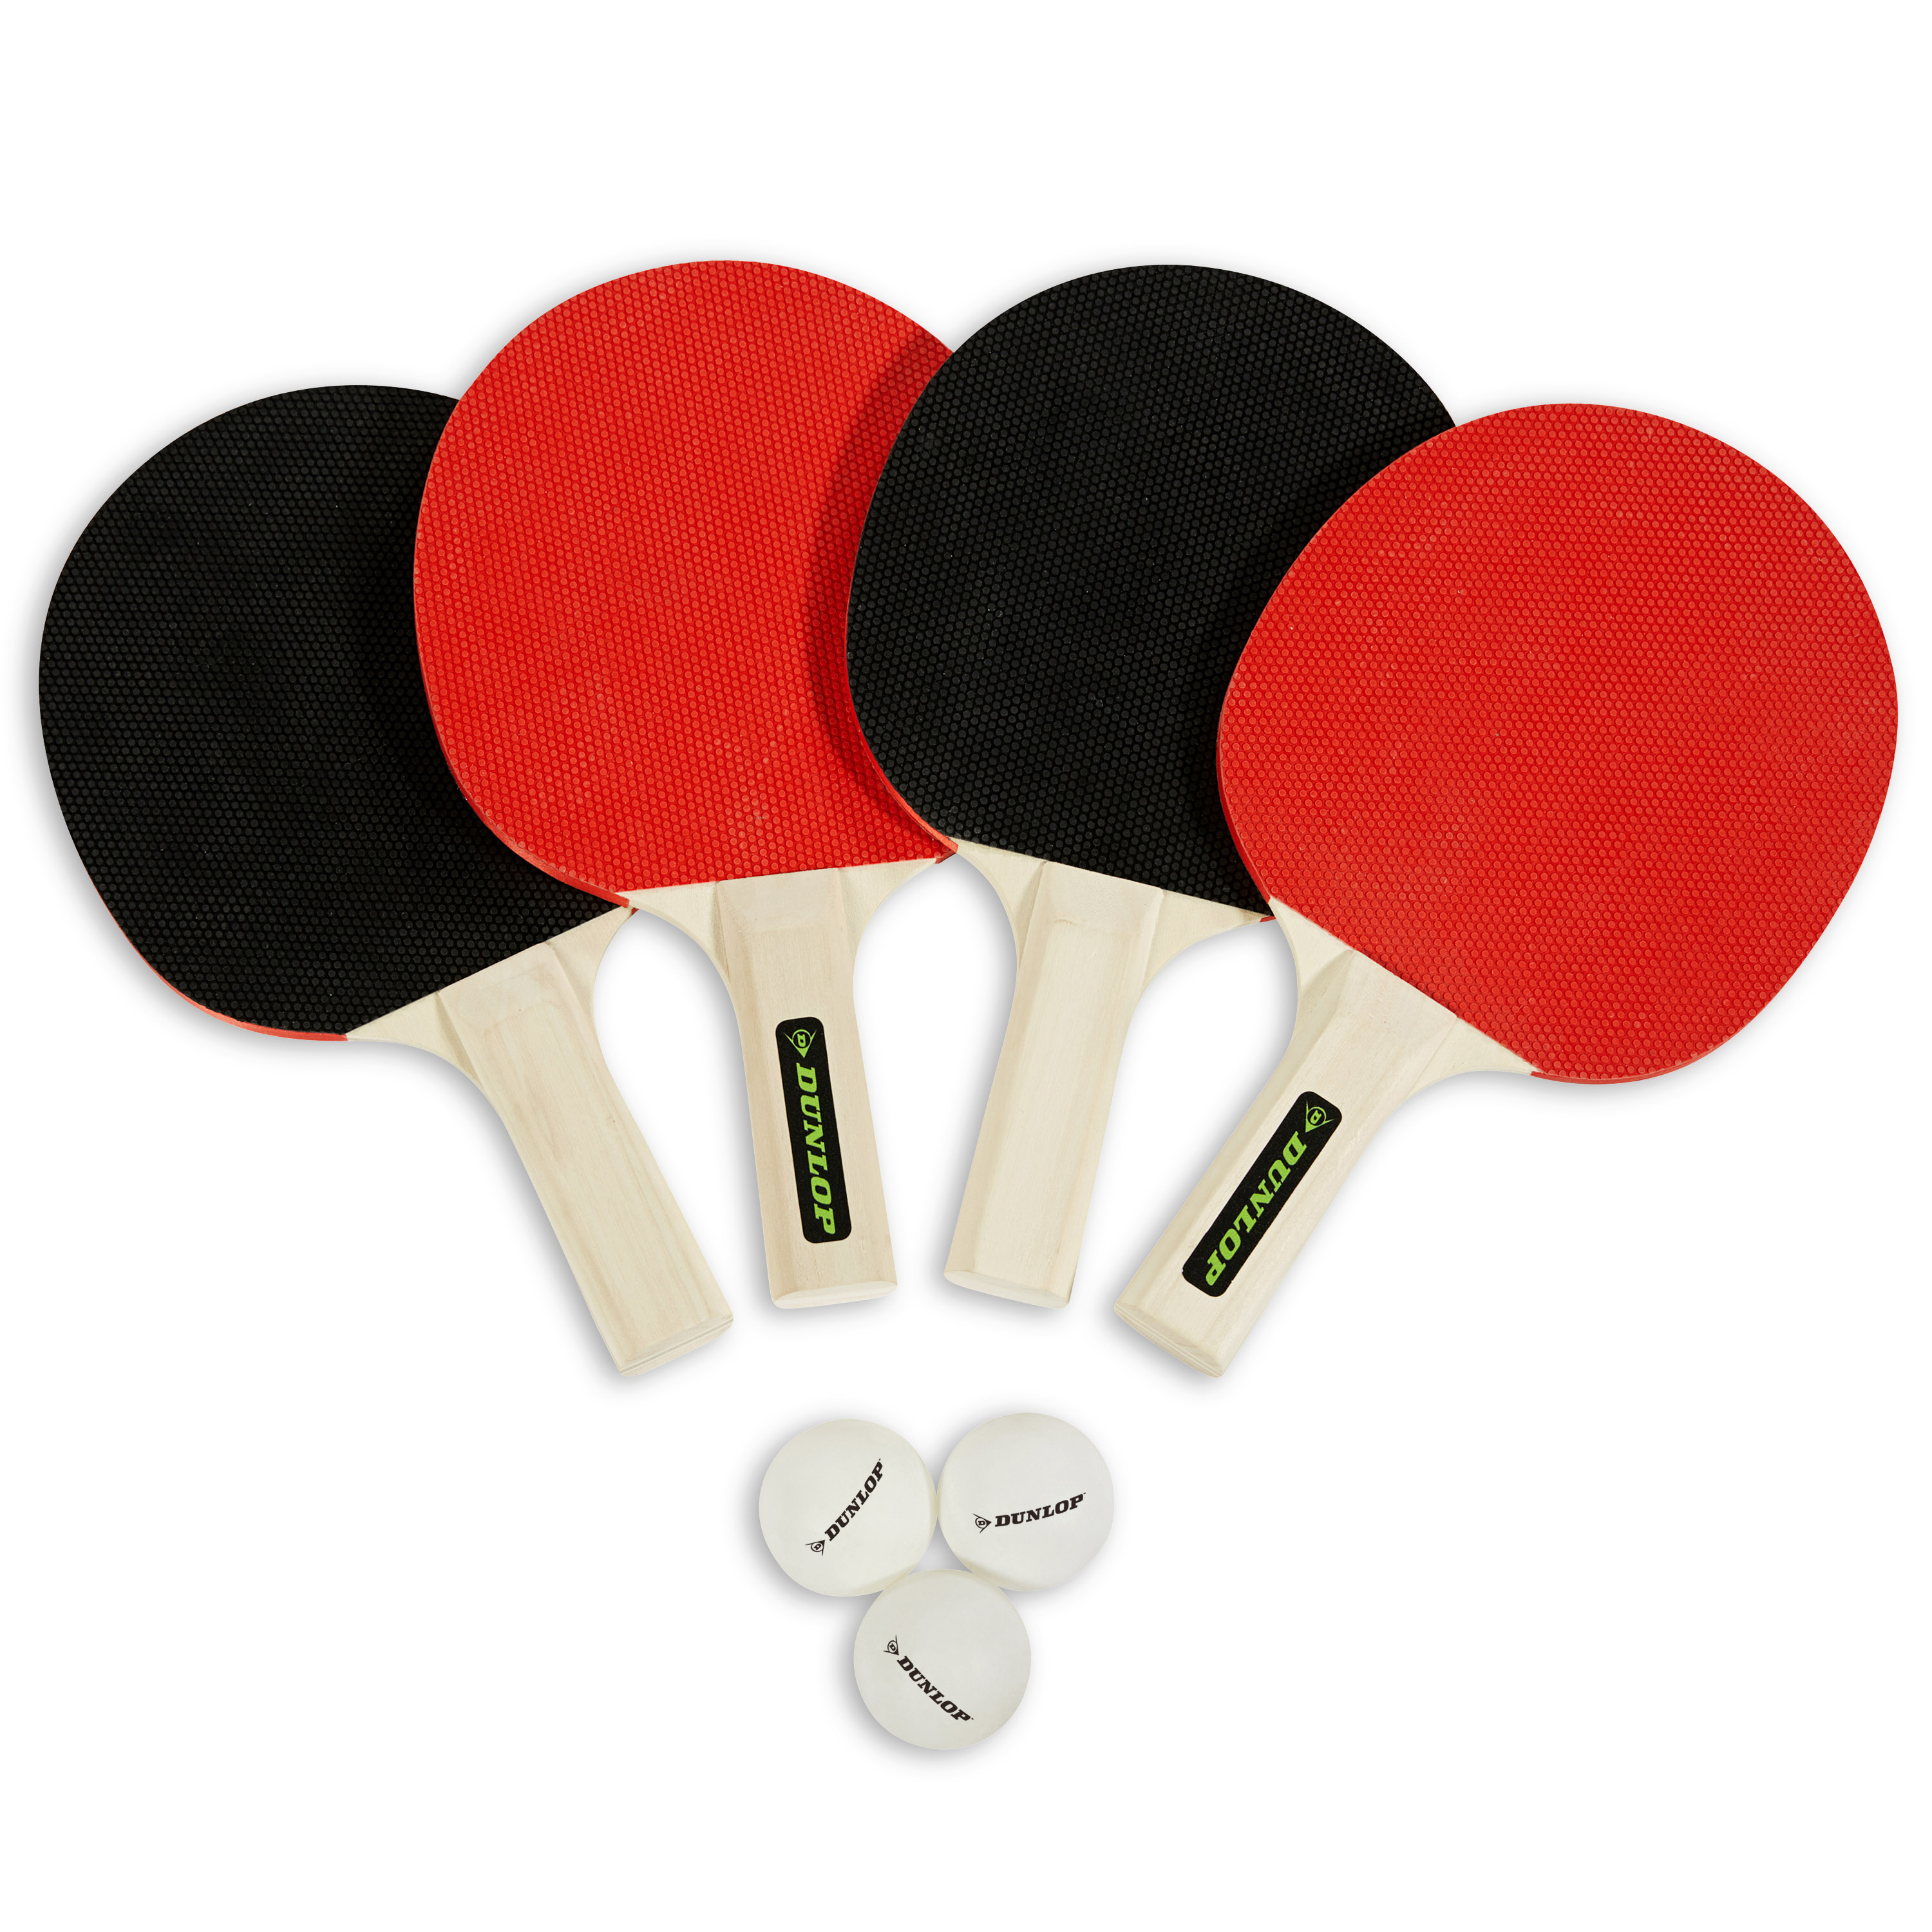 Dunlop 4 Player Table Tennis Accessory Set,Four Rackets and Three Ping Pong Balls